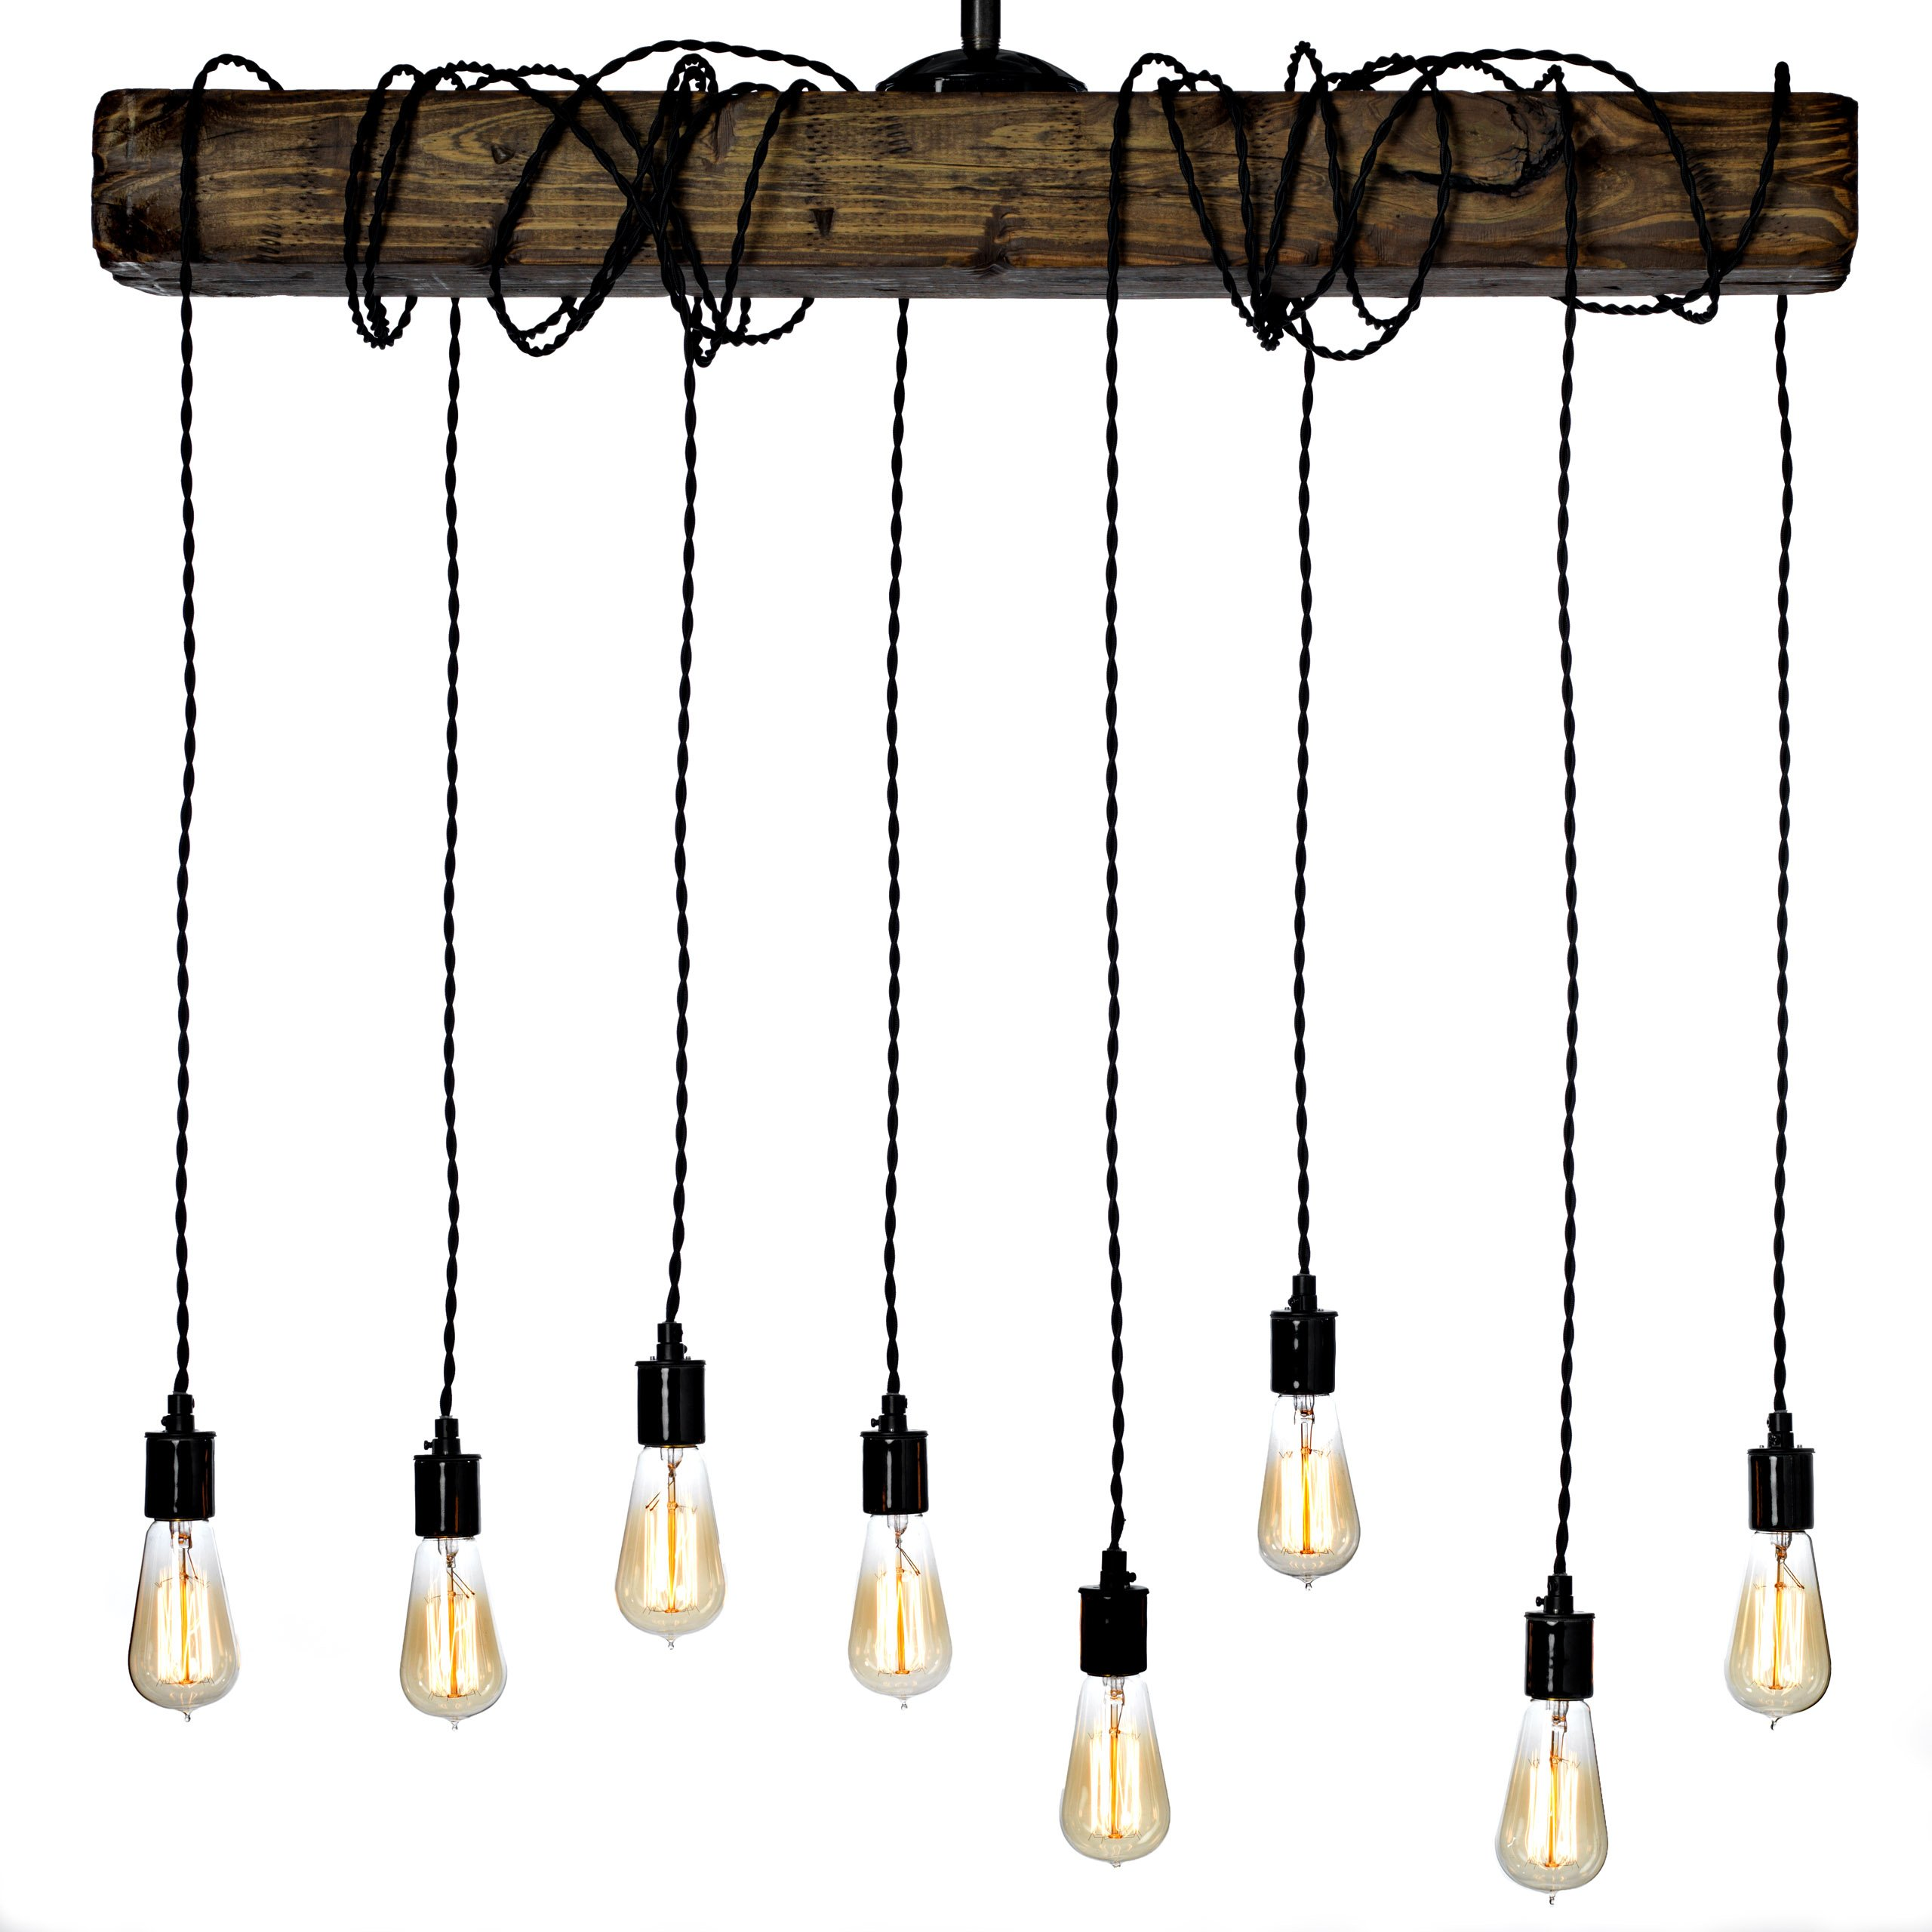 Farmhouse Style Light Fixture - Wrapped Wood Beam Antique Decor Chandelier Pendant Lighting - Vintage Kitchen, Bar, Industrial, Island, Billiard and Edison Bulb Decor. Natural Reclaimed Style Wooden by Barrister & Joiner Lighting